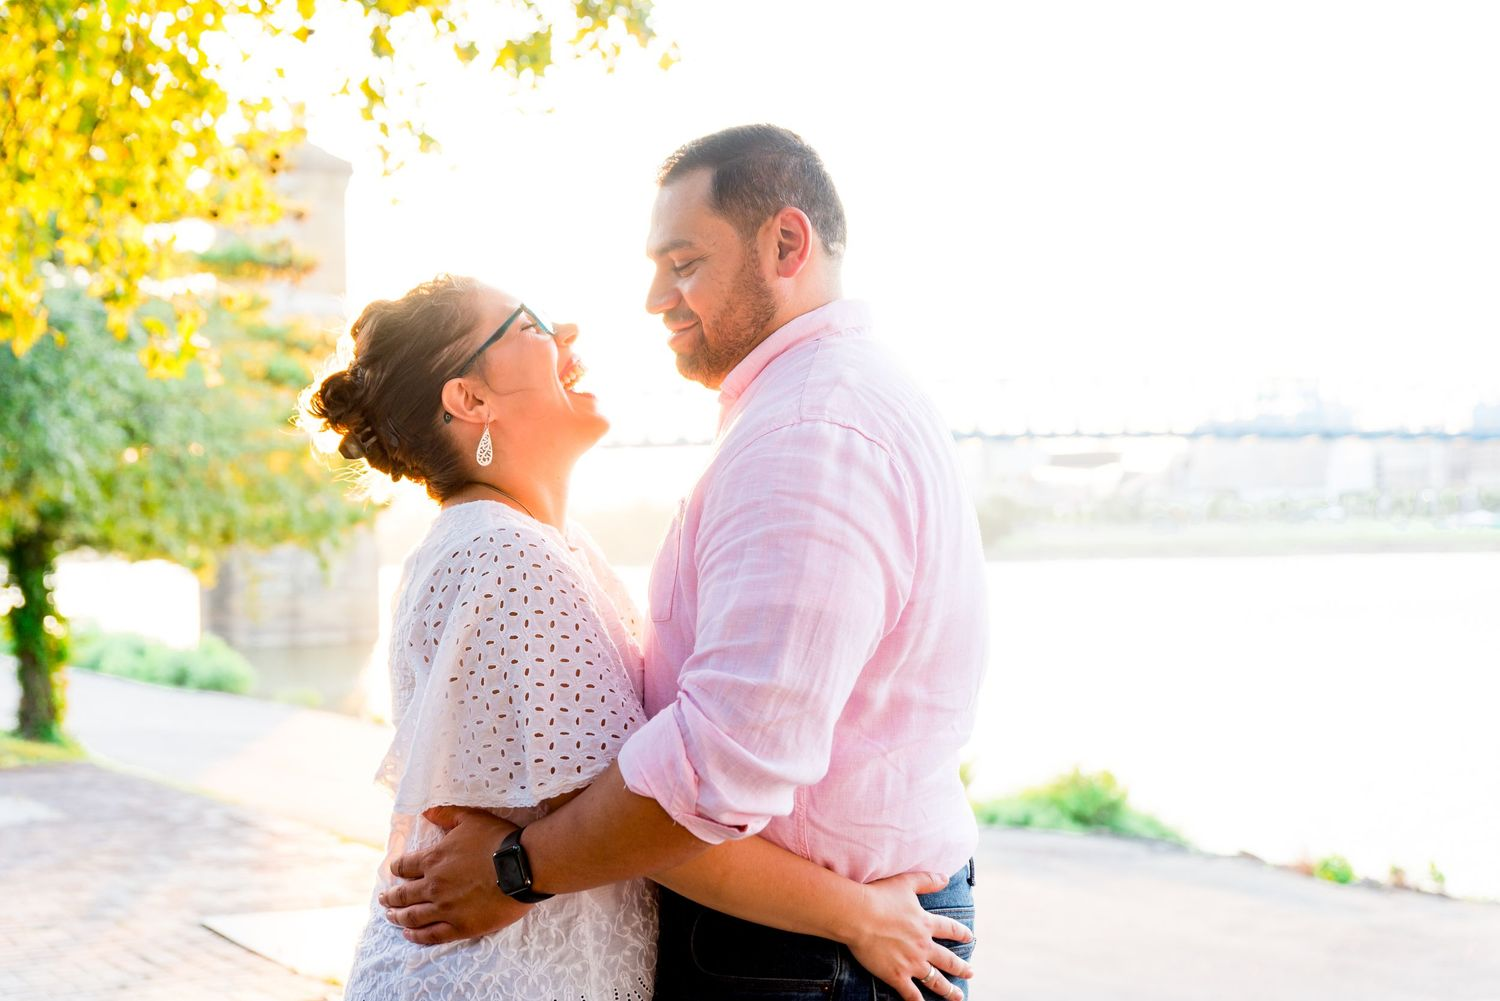 woman in white shirt hugs her fiance in pink shirt and laughs while looking at him under a yellow tree at sunset